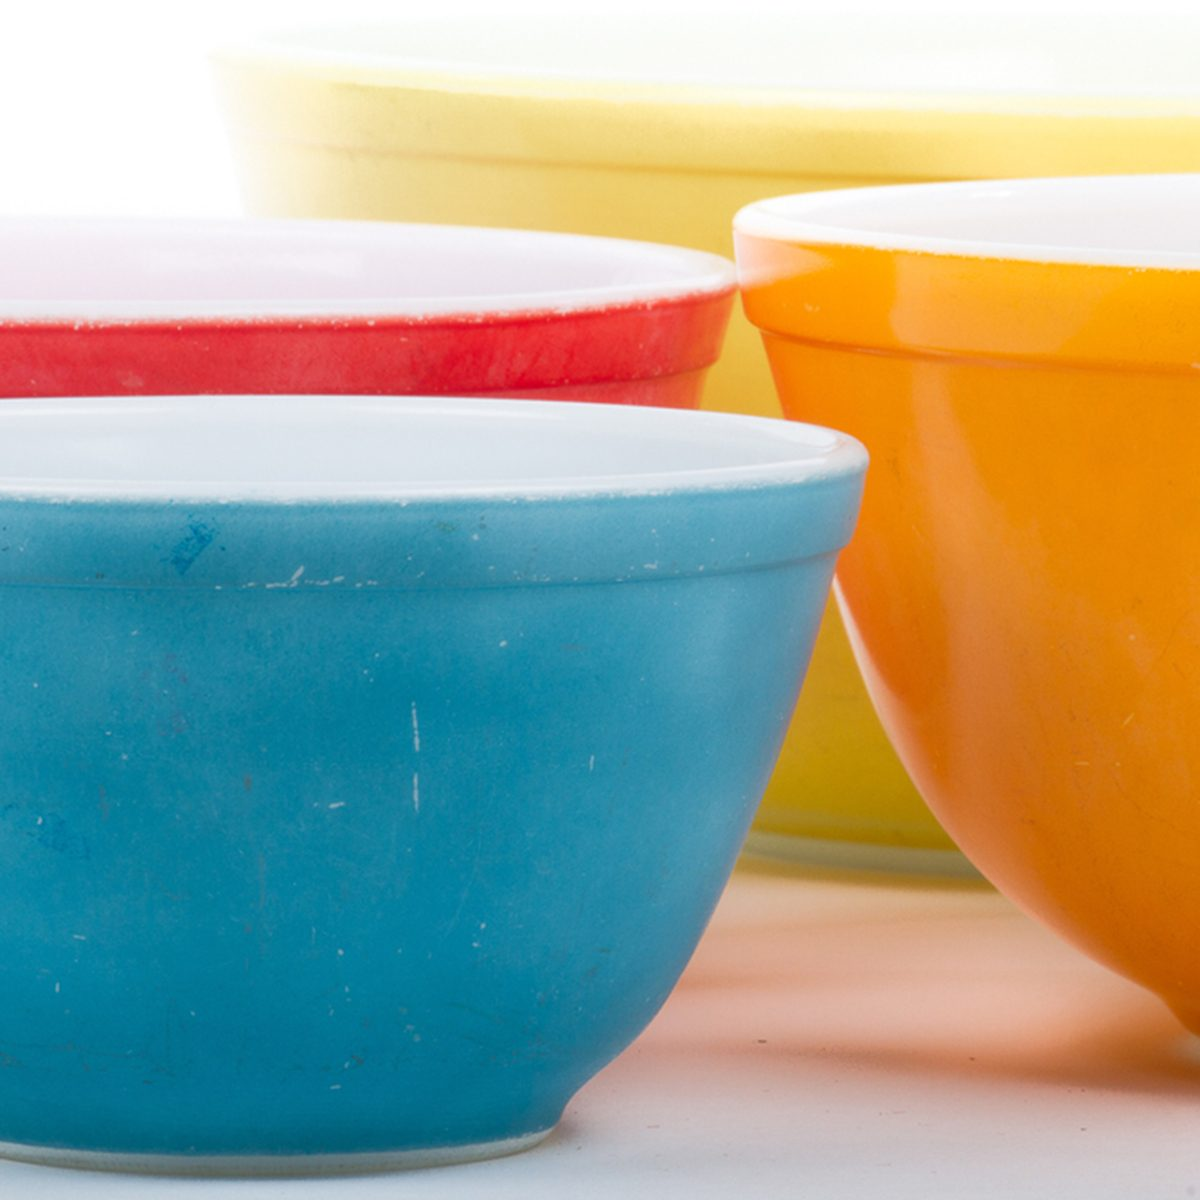 Vintage Colored Bowls; Shutterstock ID 134878409